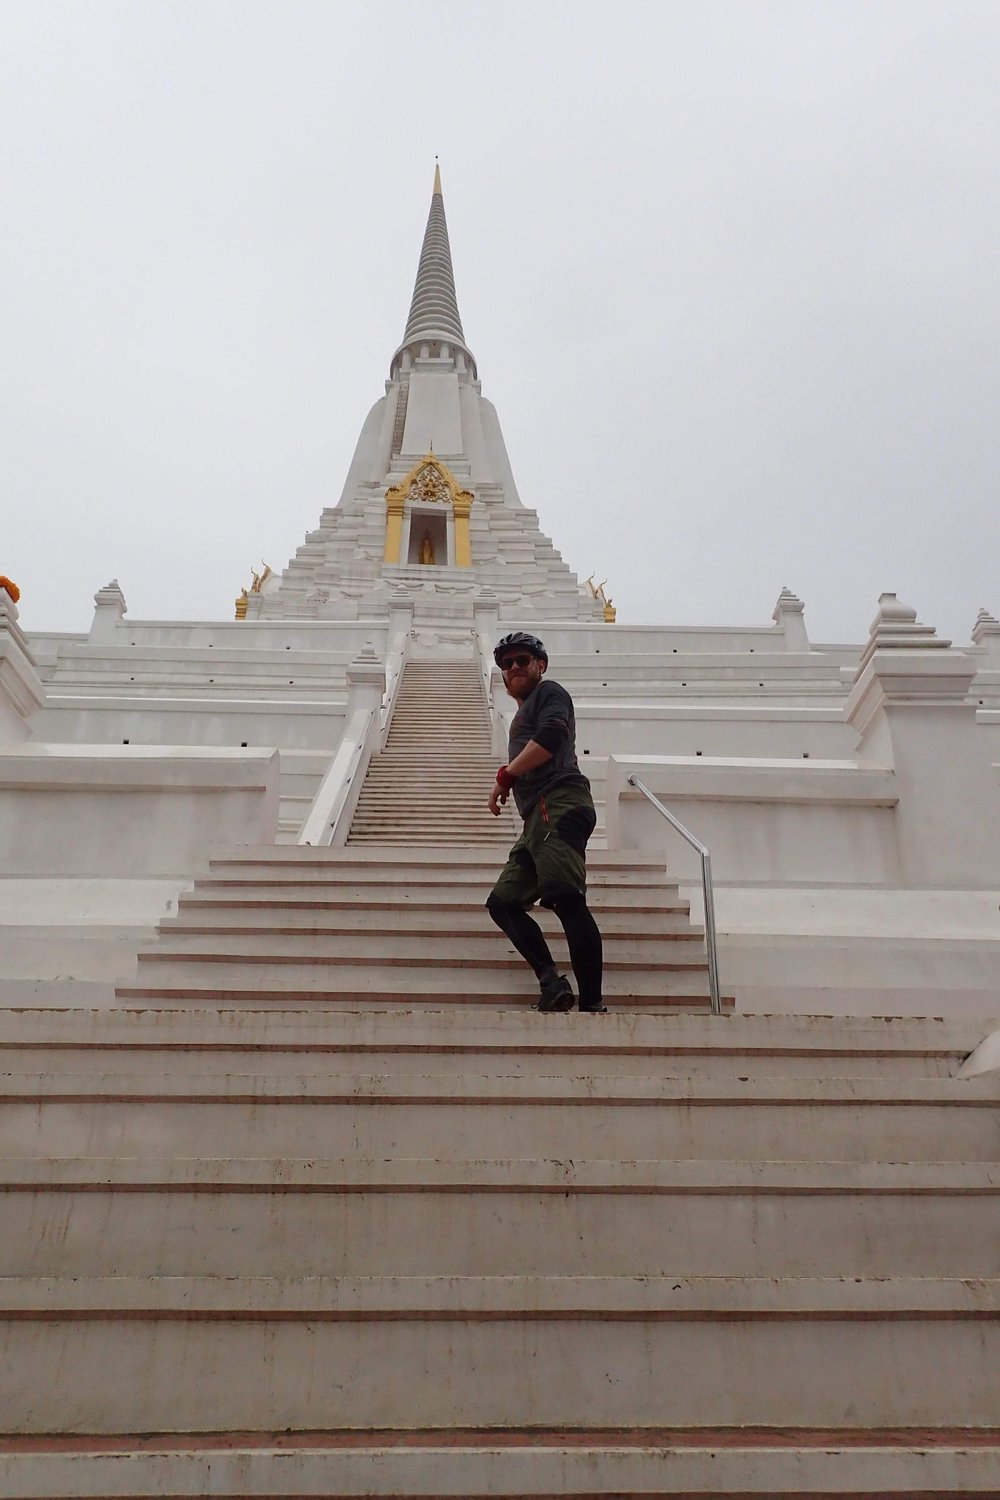 Steep steps up to the top of the Stupa.